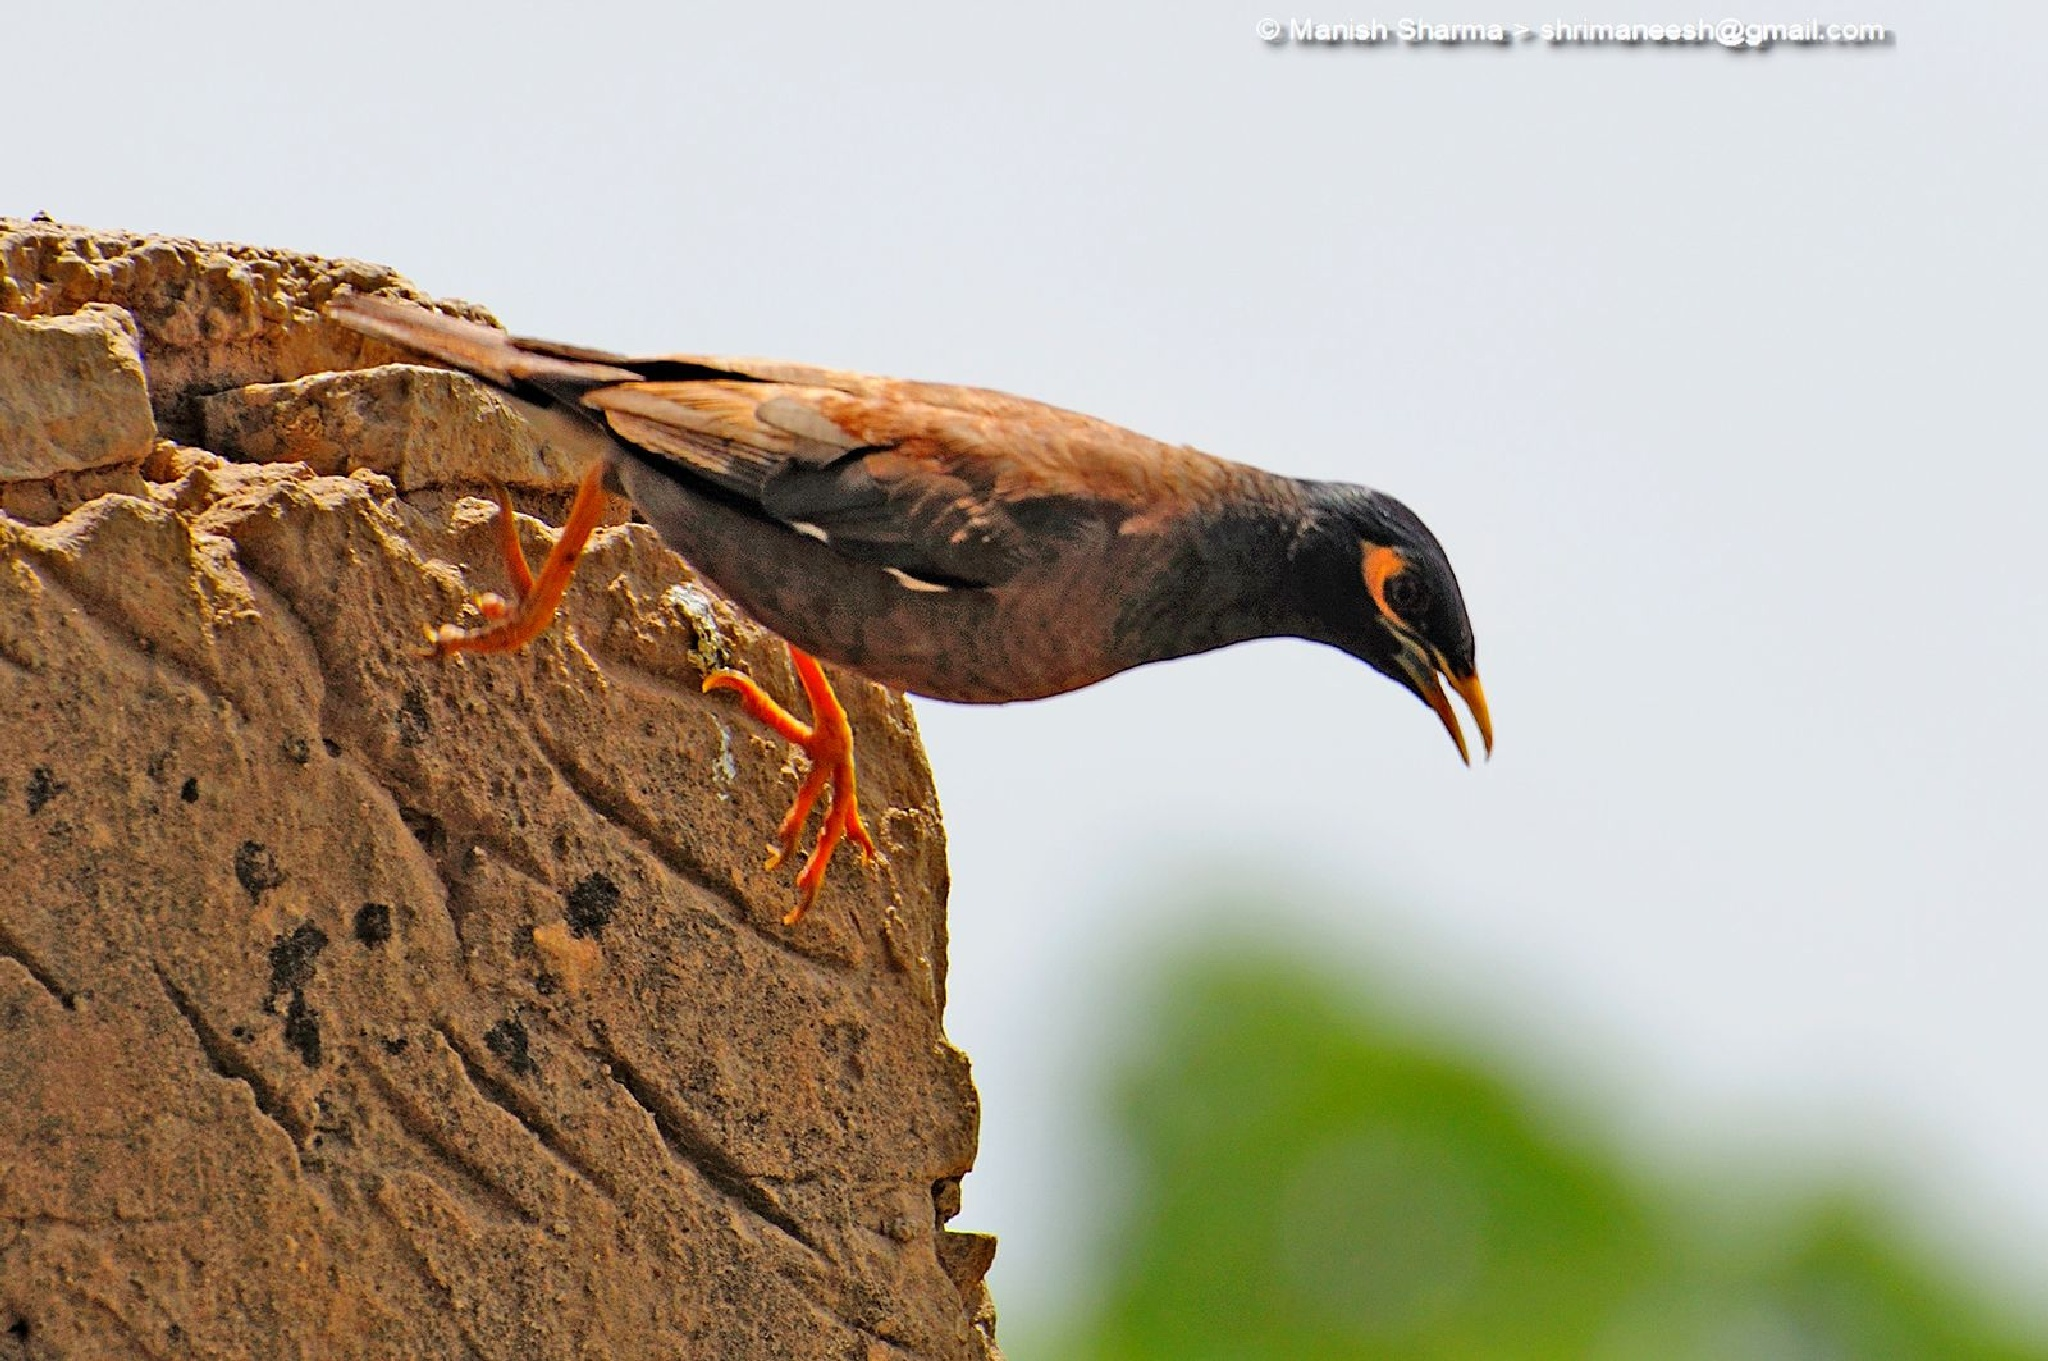 Common Myna... Scientific name: Acridotheres tristis by Maneesh Sharma